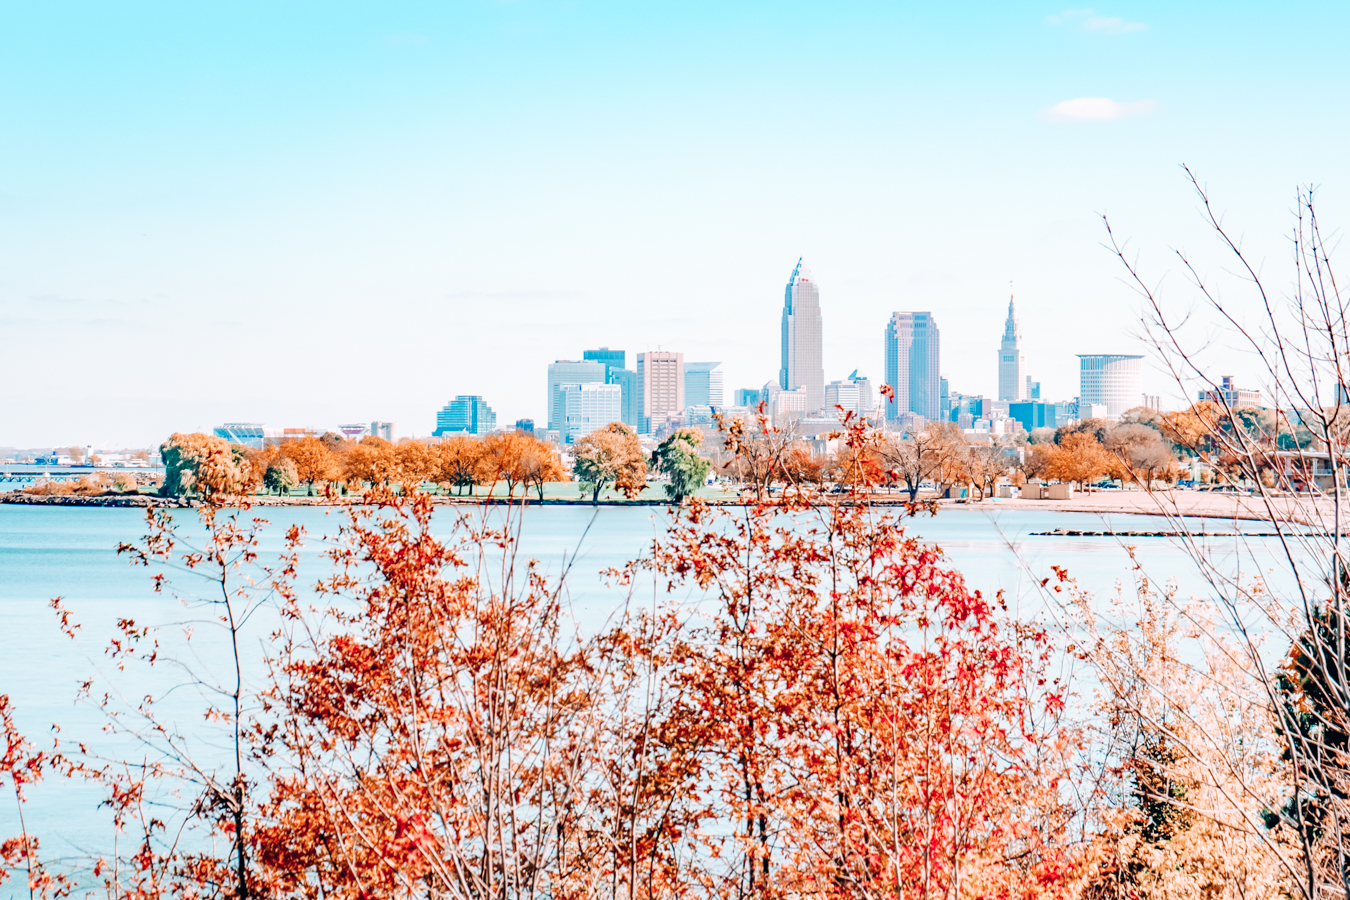 Nature and buildings in Cleveland